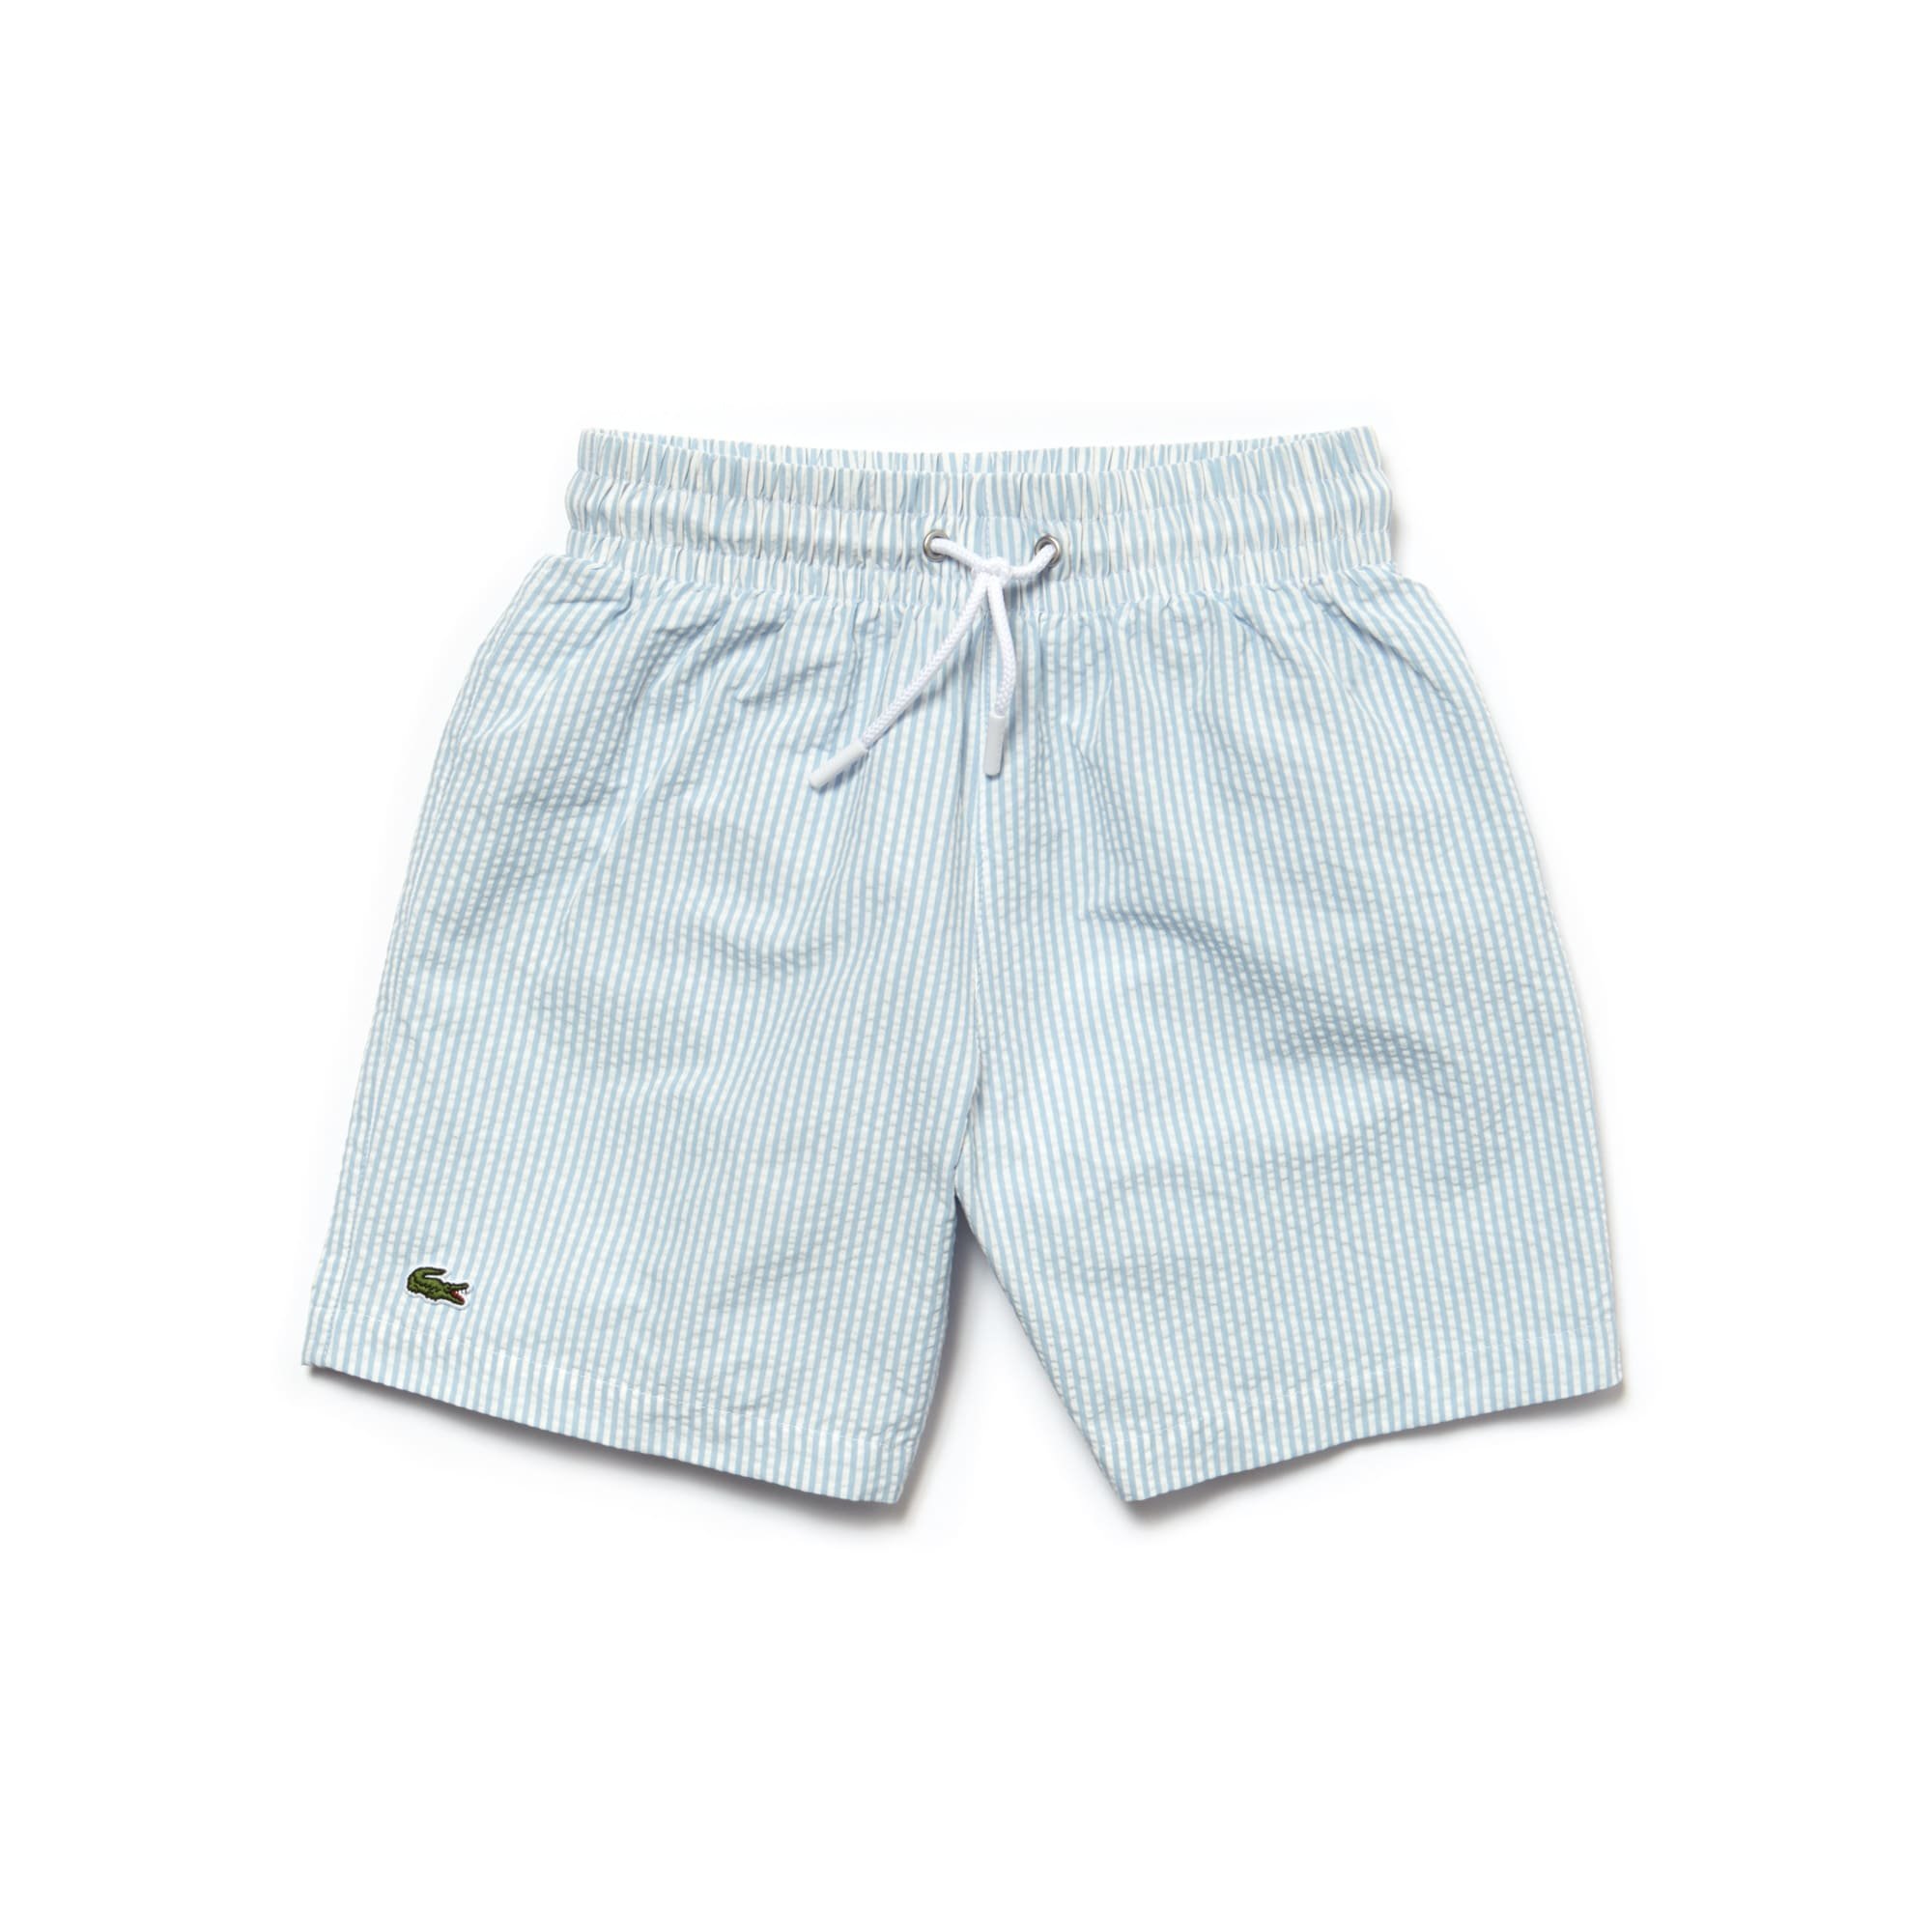 Boys' Seersucker Swimming Trunks